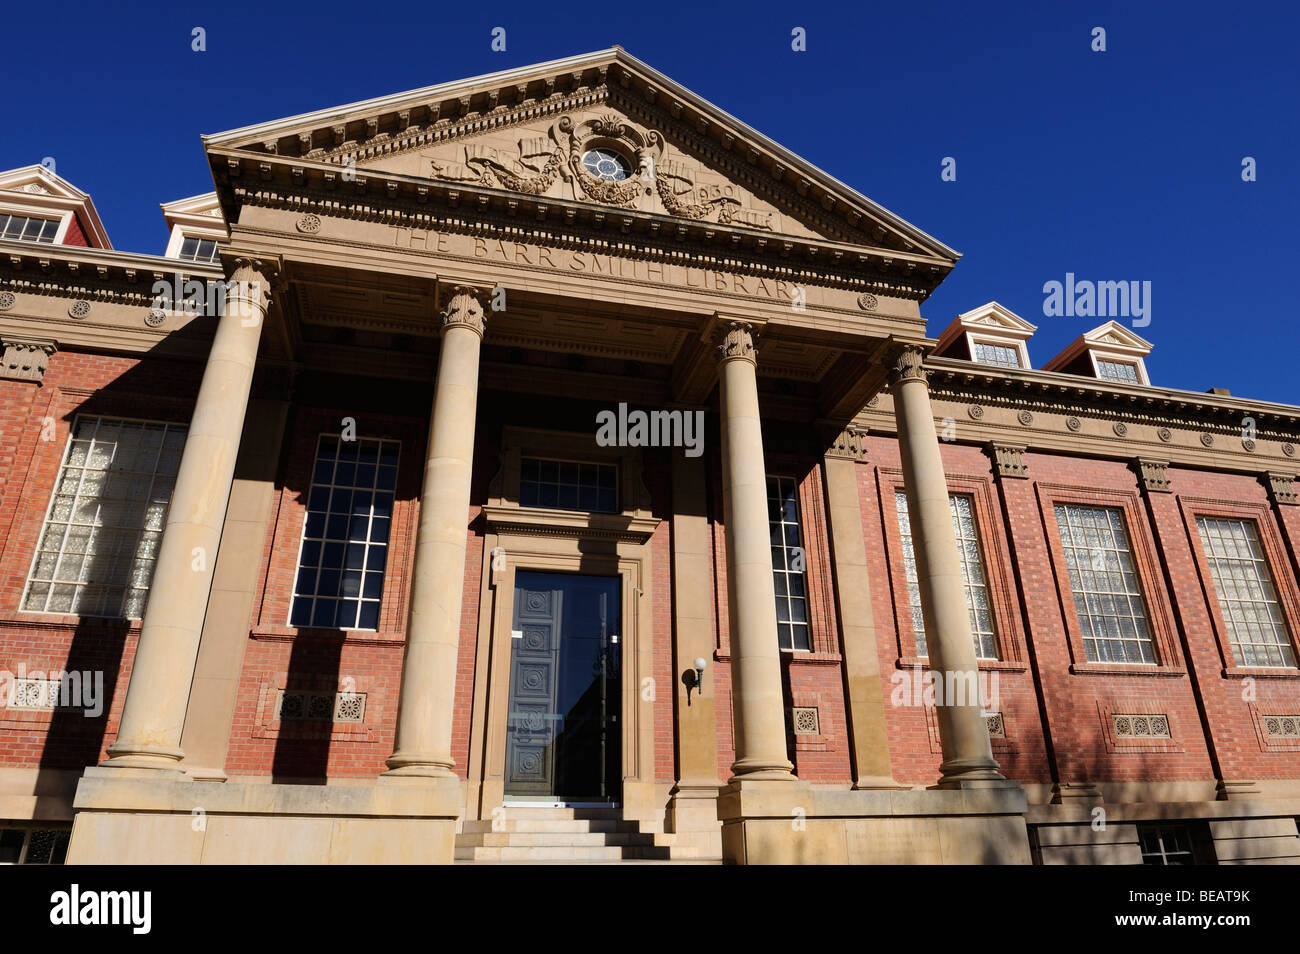 The Barr Smith Library Building In The University Campus In Adelaide Stock Photo Royalty Free